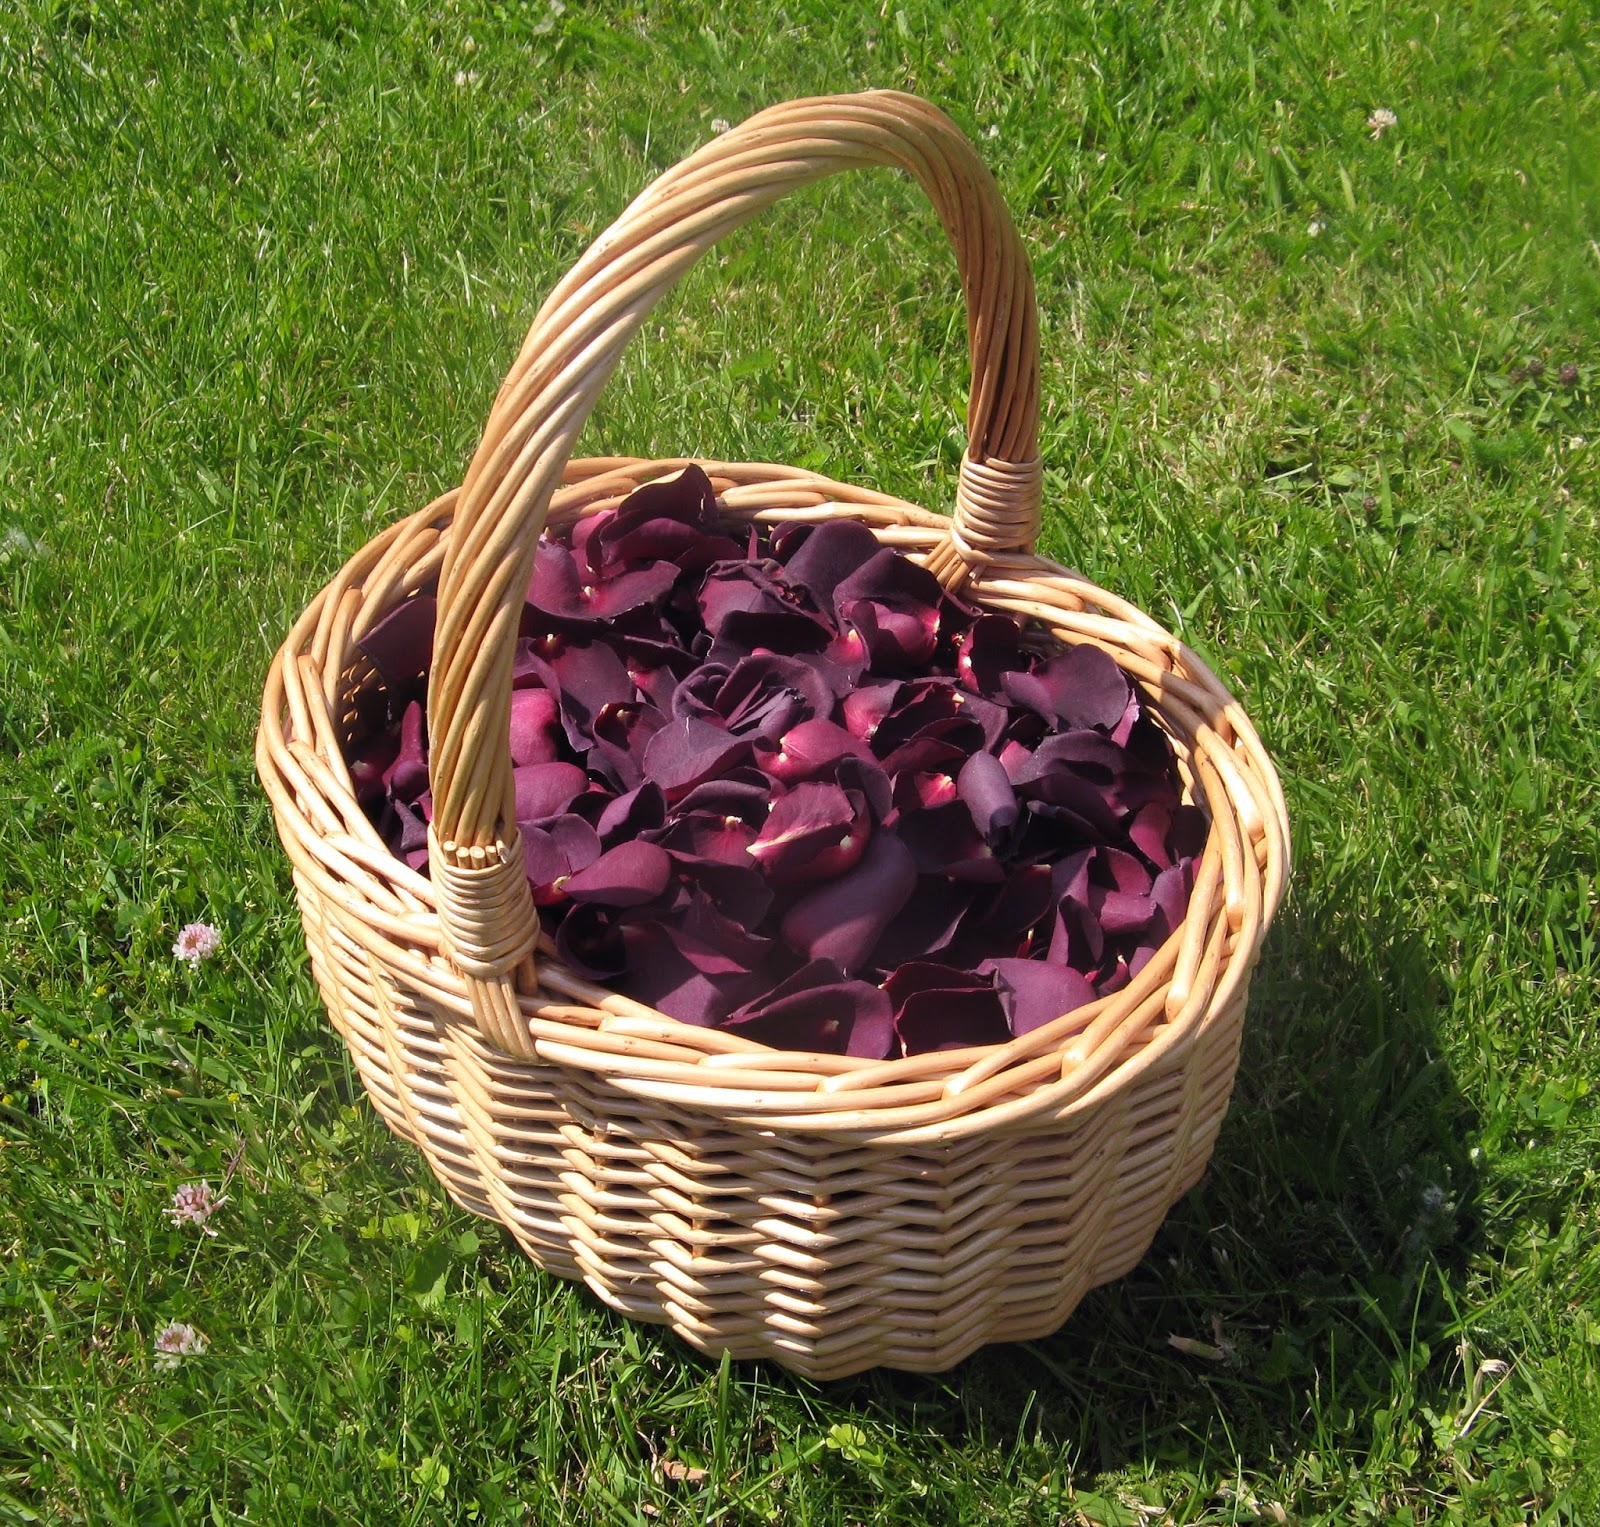 Wedding Baskets For Flower Petals : The confetti beautiful berries autumn and fall